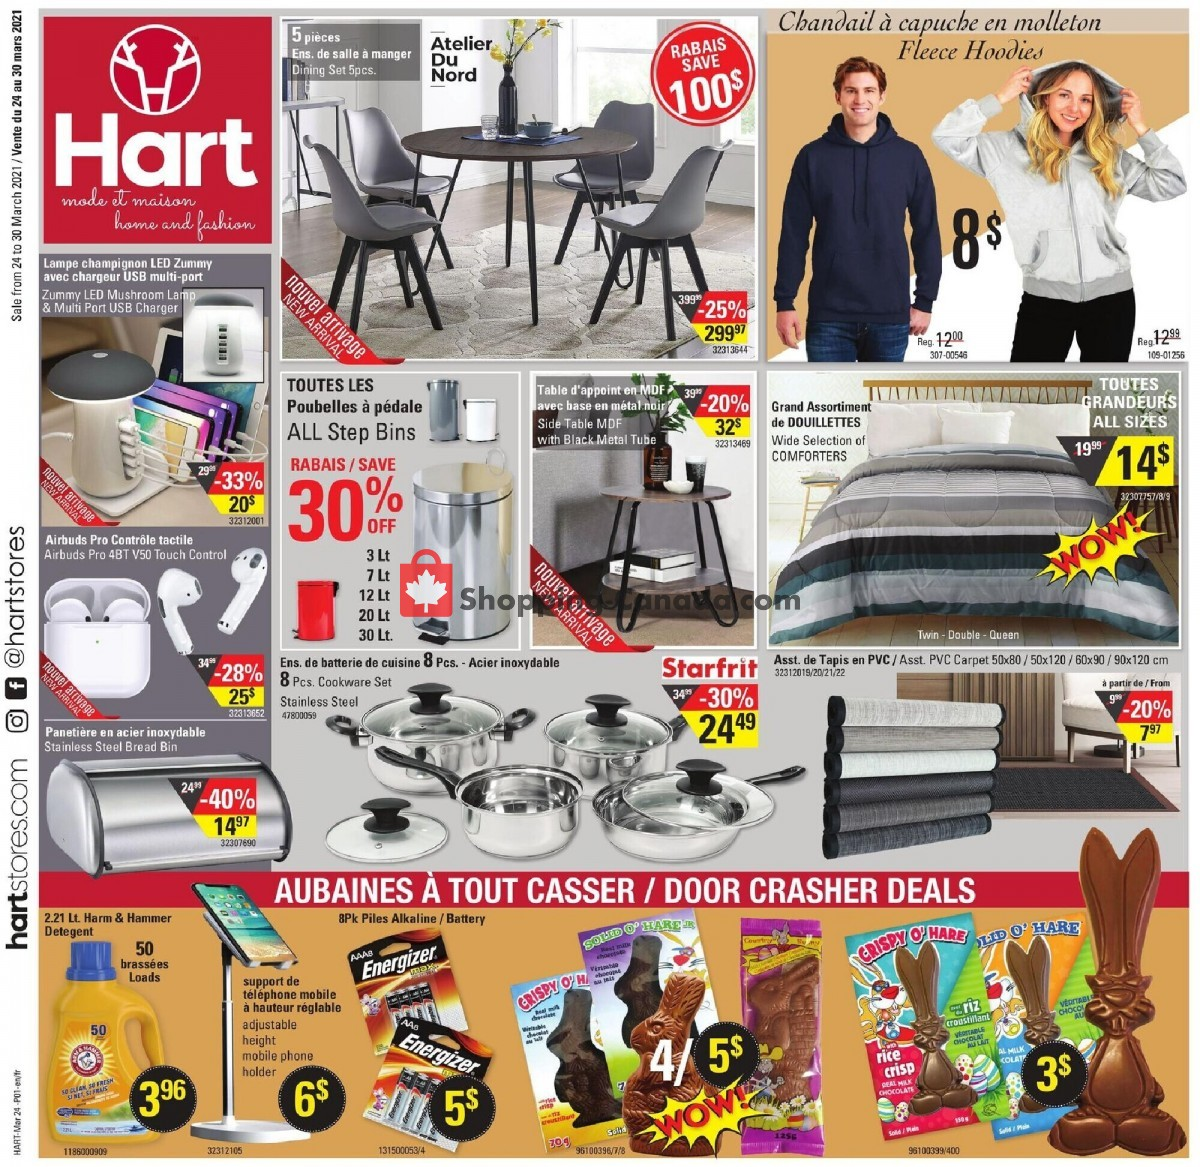 Flyer Hart Canada - from Wednesday March 24, 2021 to Tuesday March 30, 2021